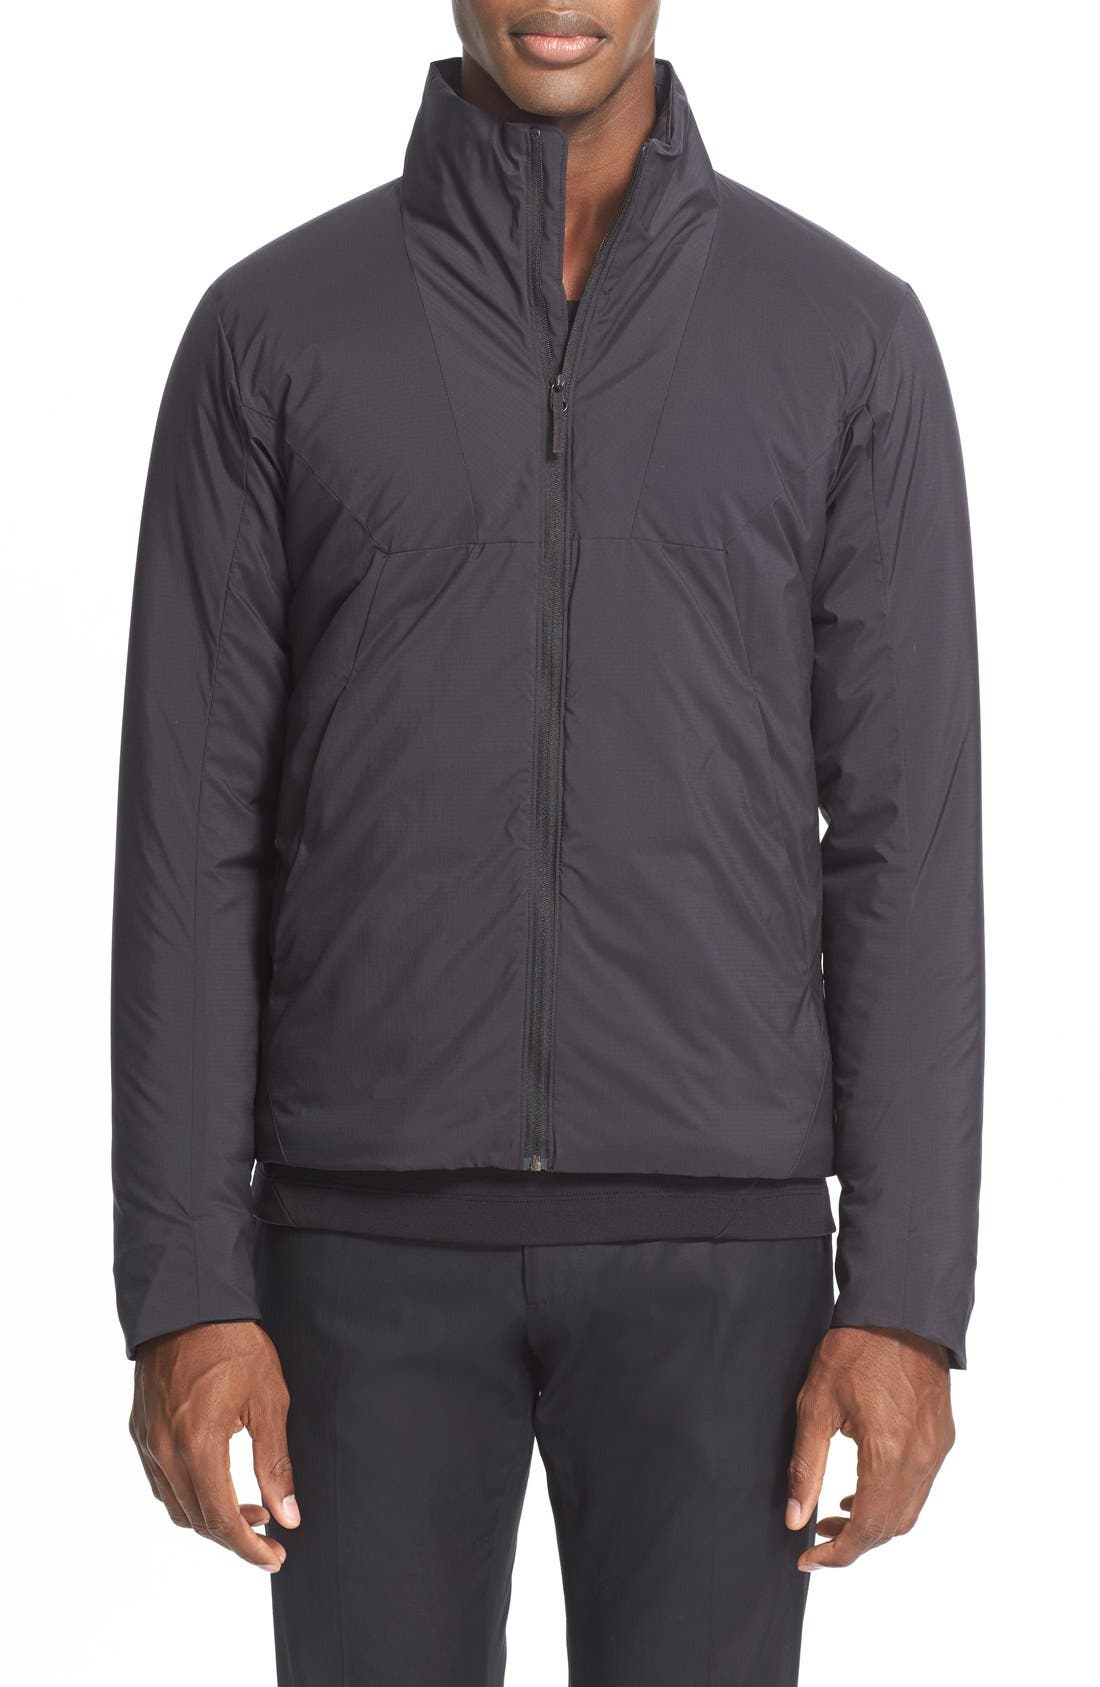 Alternate Image 1 Selected - Arc'teryx Veilance 'MionnIS' Water ResistantJacket